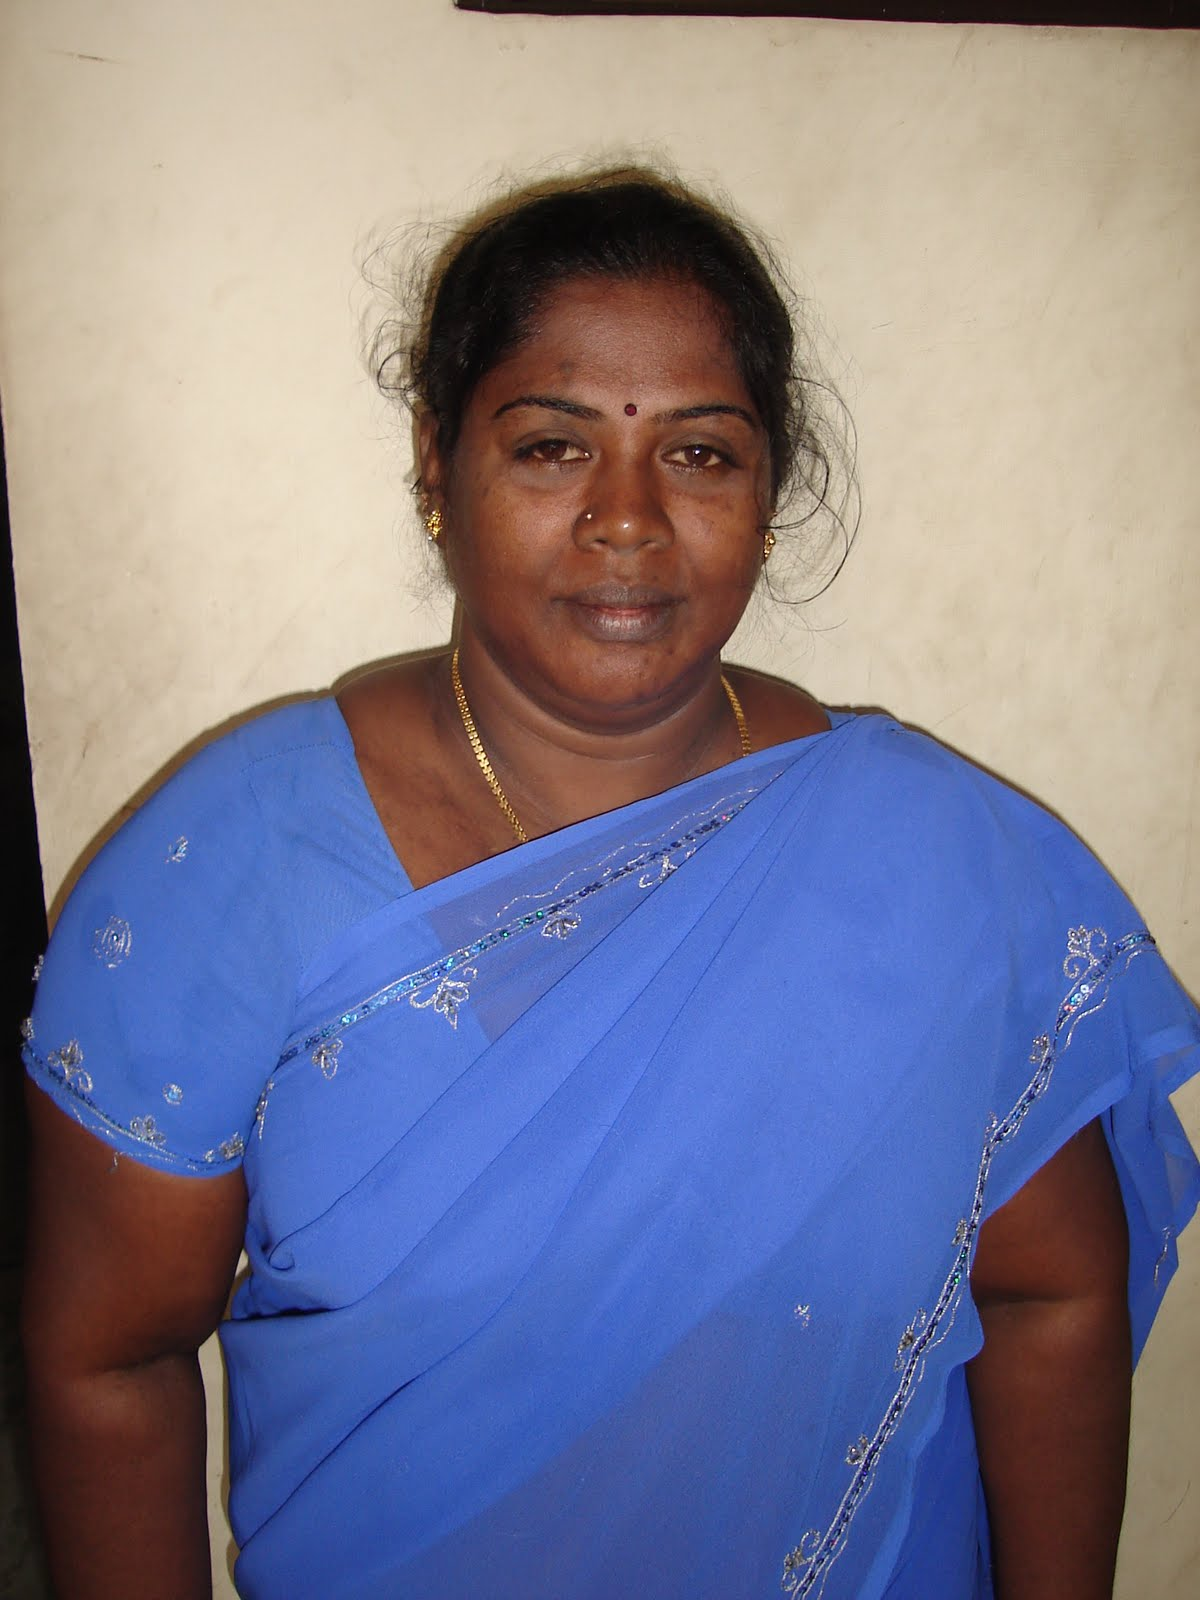 Tamil amma and magan sex fu cking, sexy nude fisting gifs